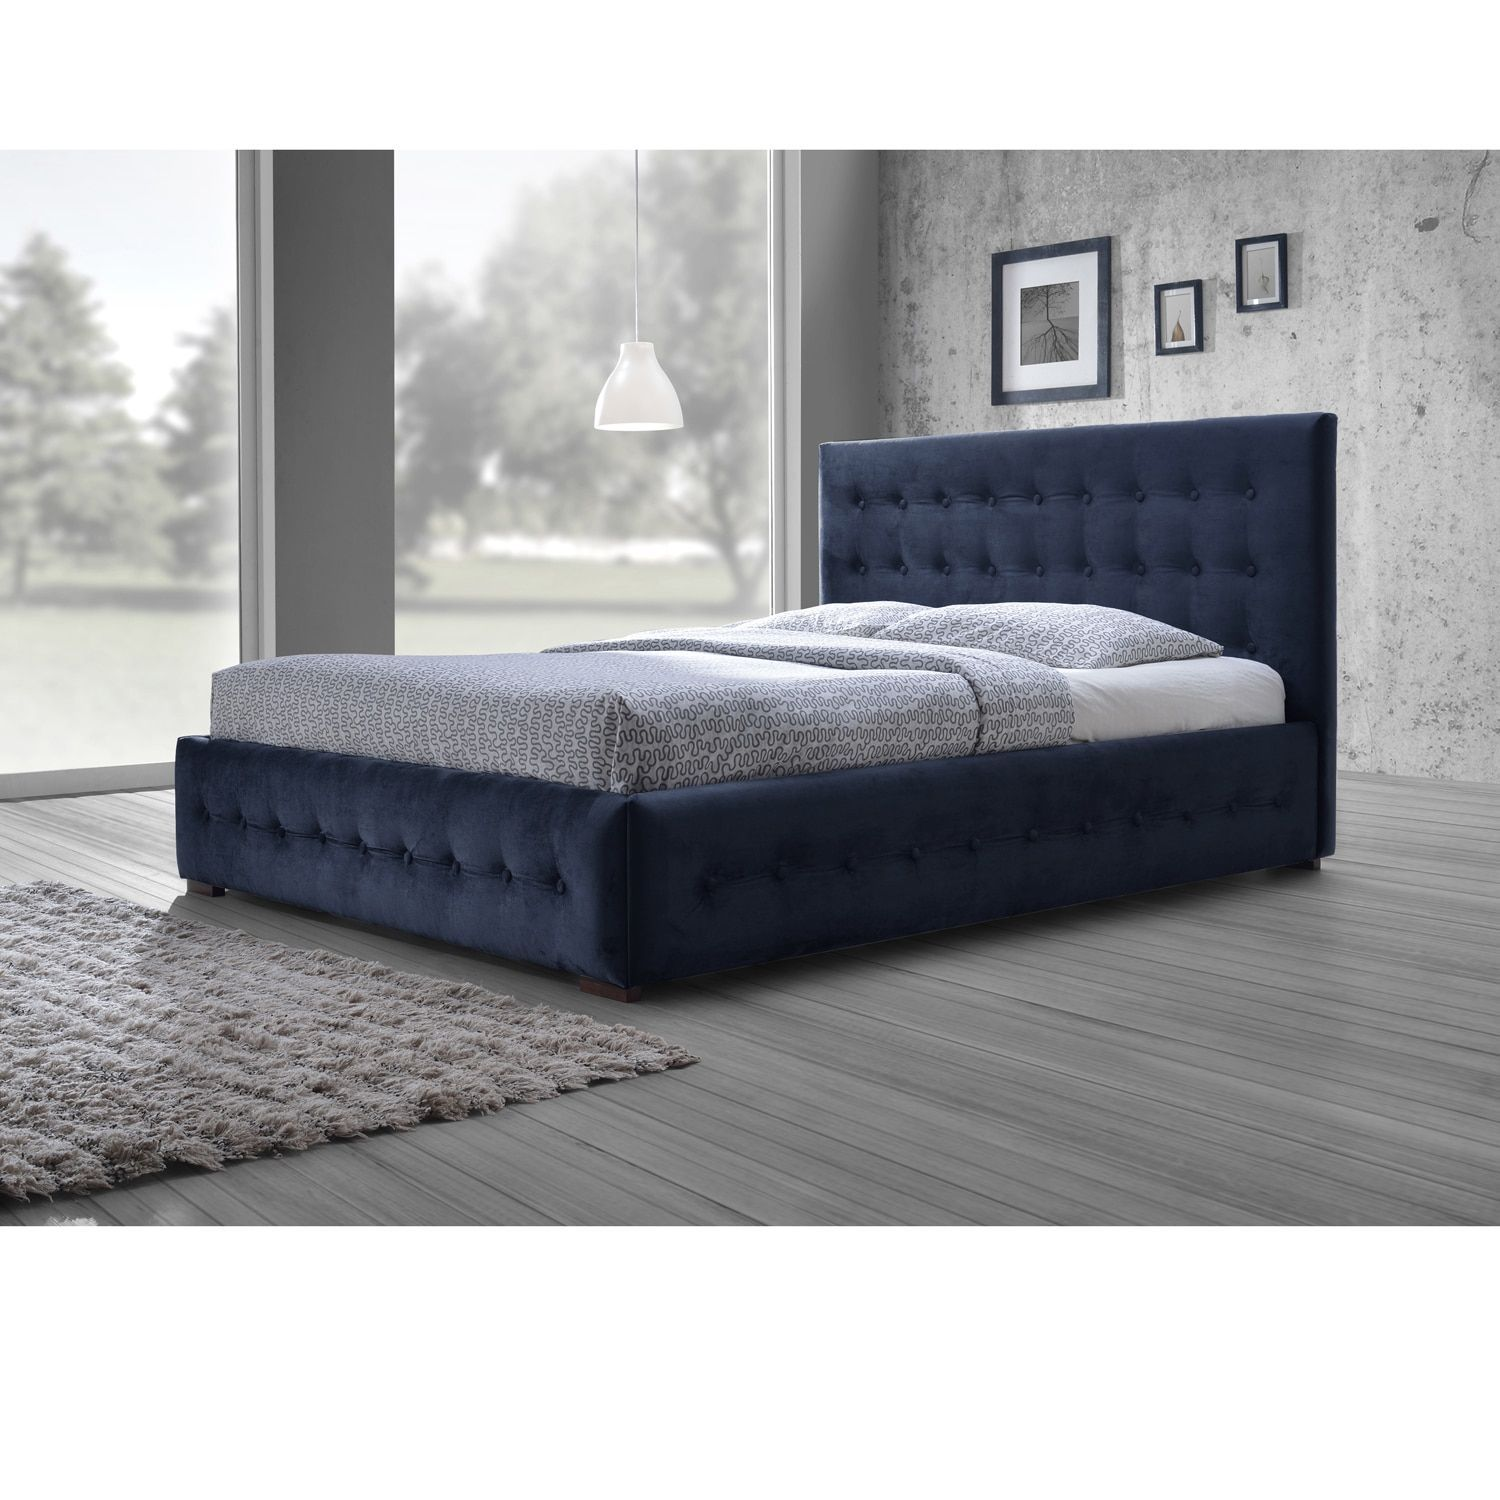 Baxton studio modern and contemporary navy blue velvet fabric button tufted queen platform bed queen size bed blue